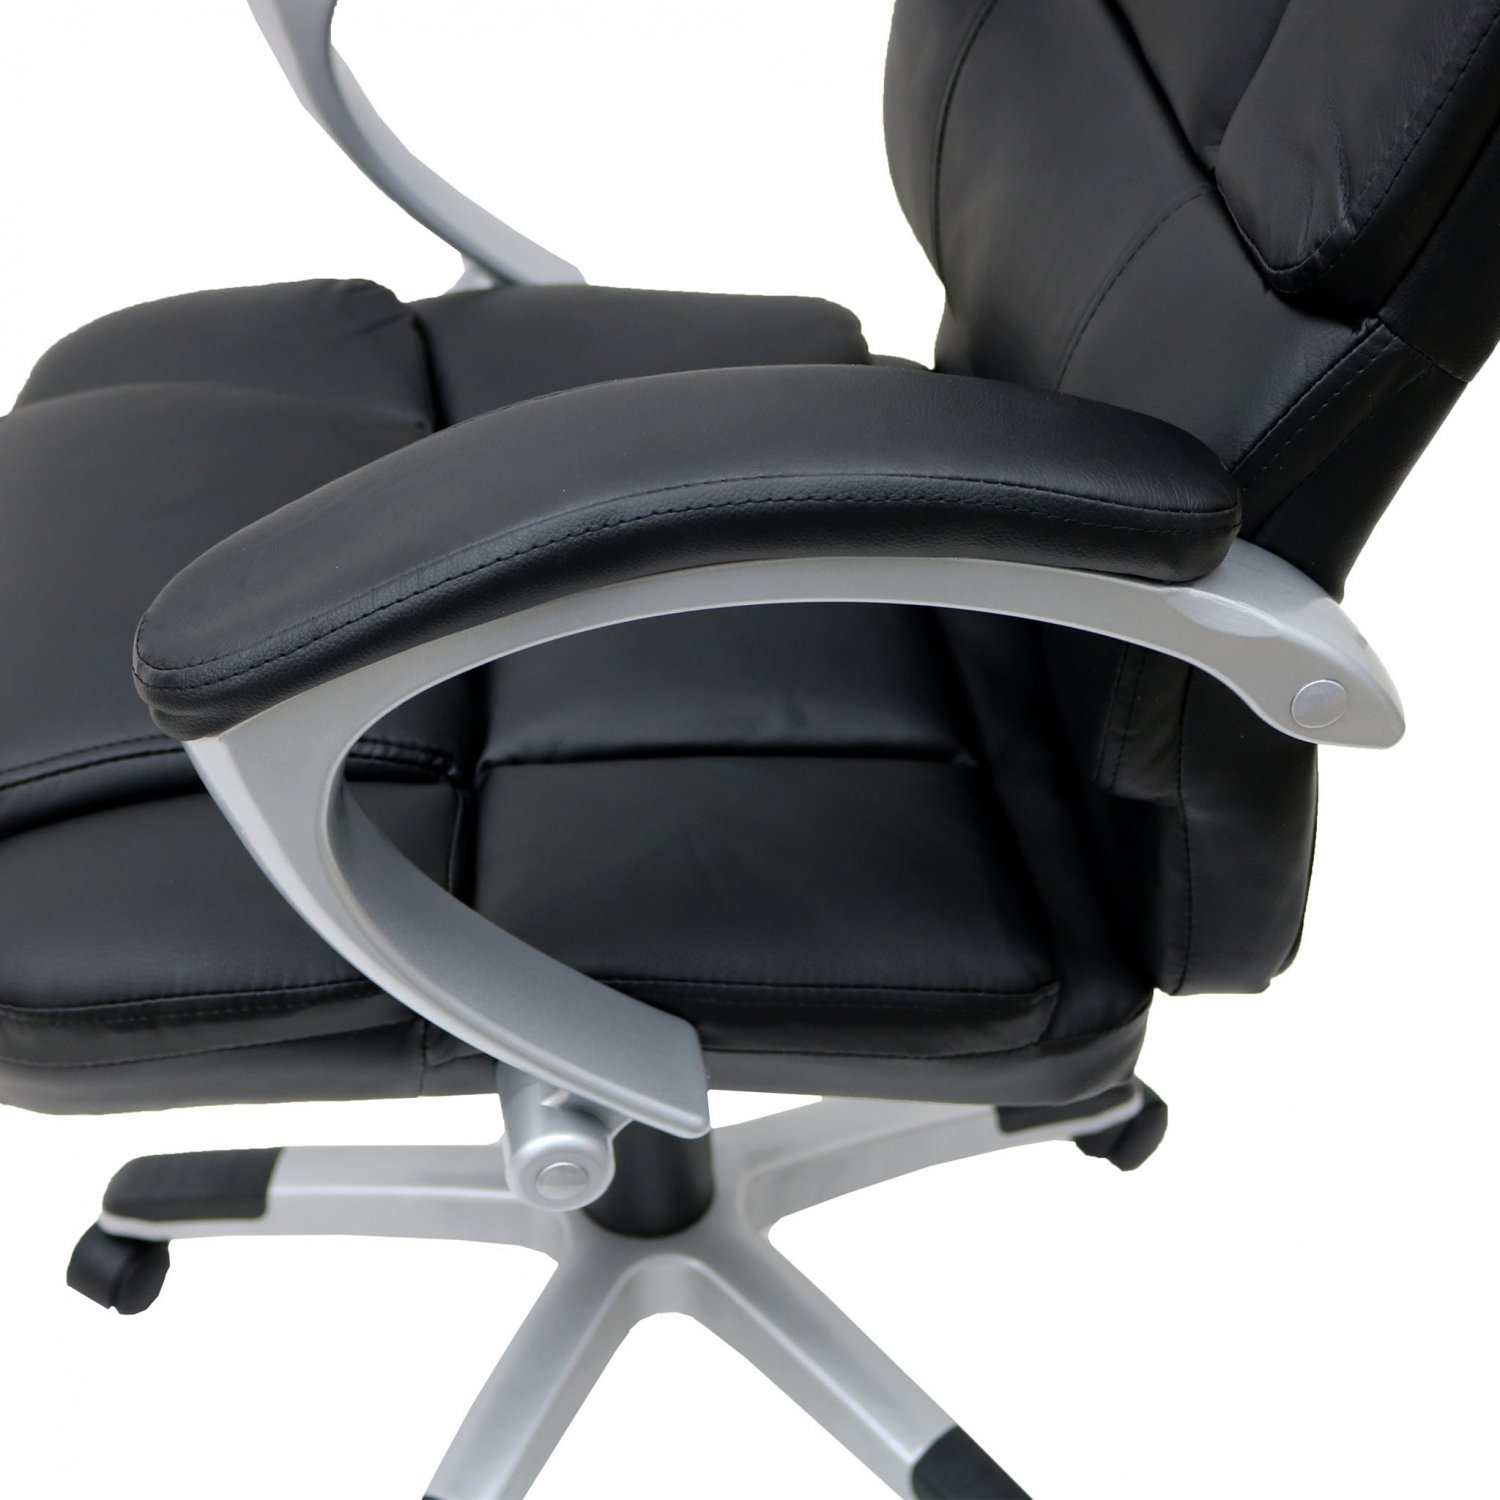 comfort office chair. Luxury Designer Computer Office Chair - Black Comfort R